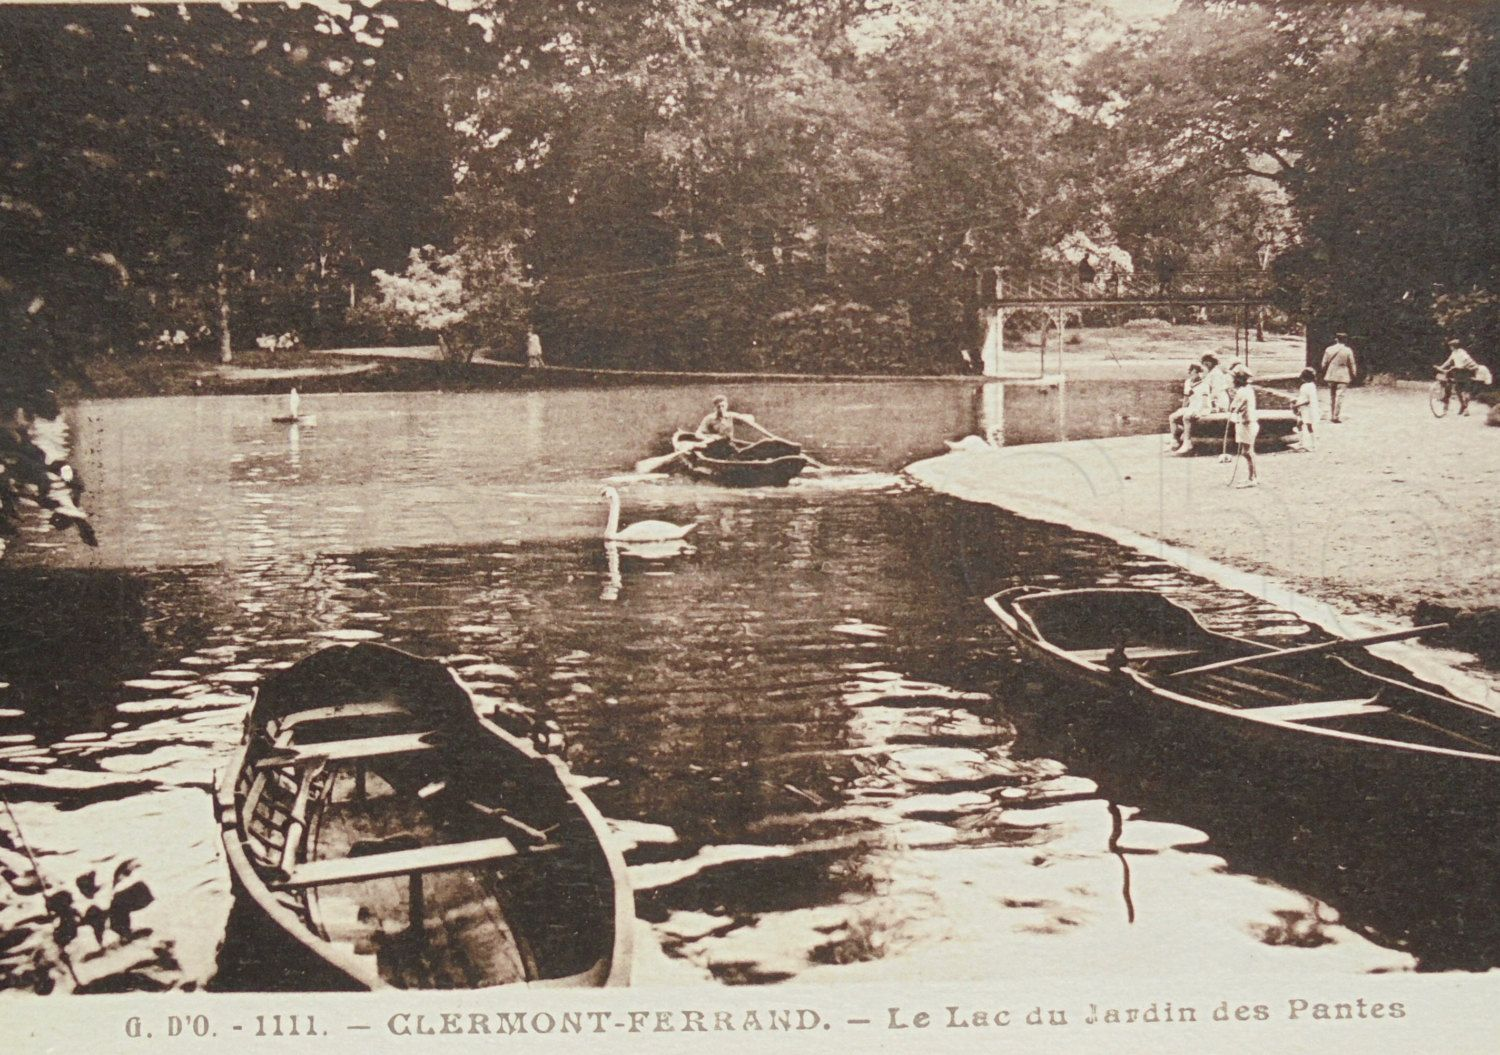 French Vintage Unused Postcard - Jardin des Pantes, Clermont-Ferrand, France by ChicEtChoc on Etsy